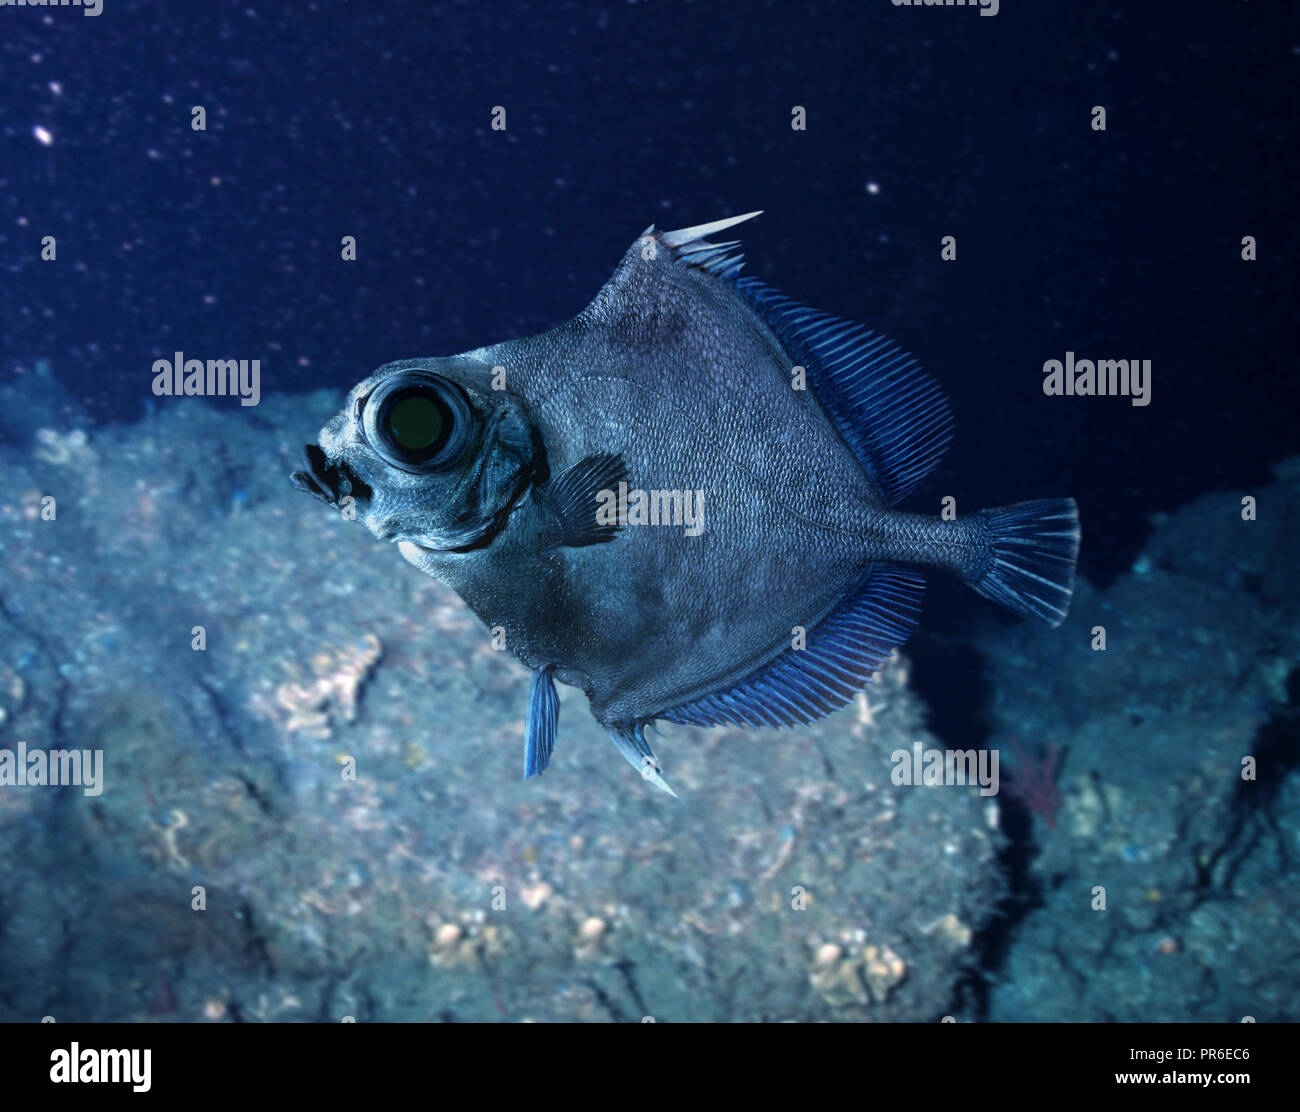 Neocyttus helgae, False boarfish, swimming. Deep sea fish that lives between 900 and 1800 m deep close to seamounts. Were associated with basalt - Stock Image